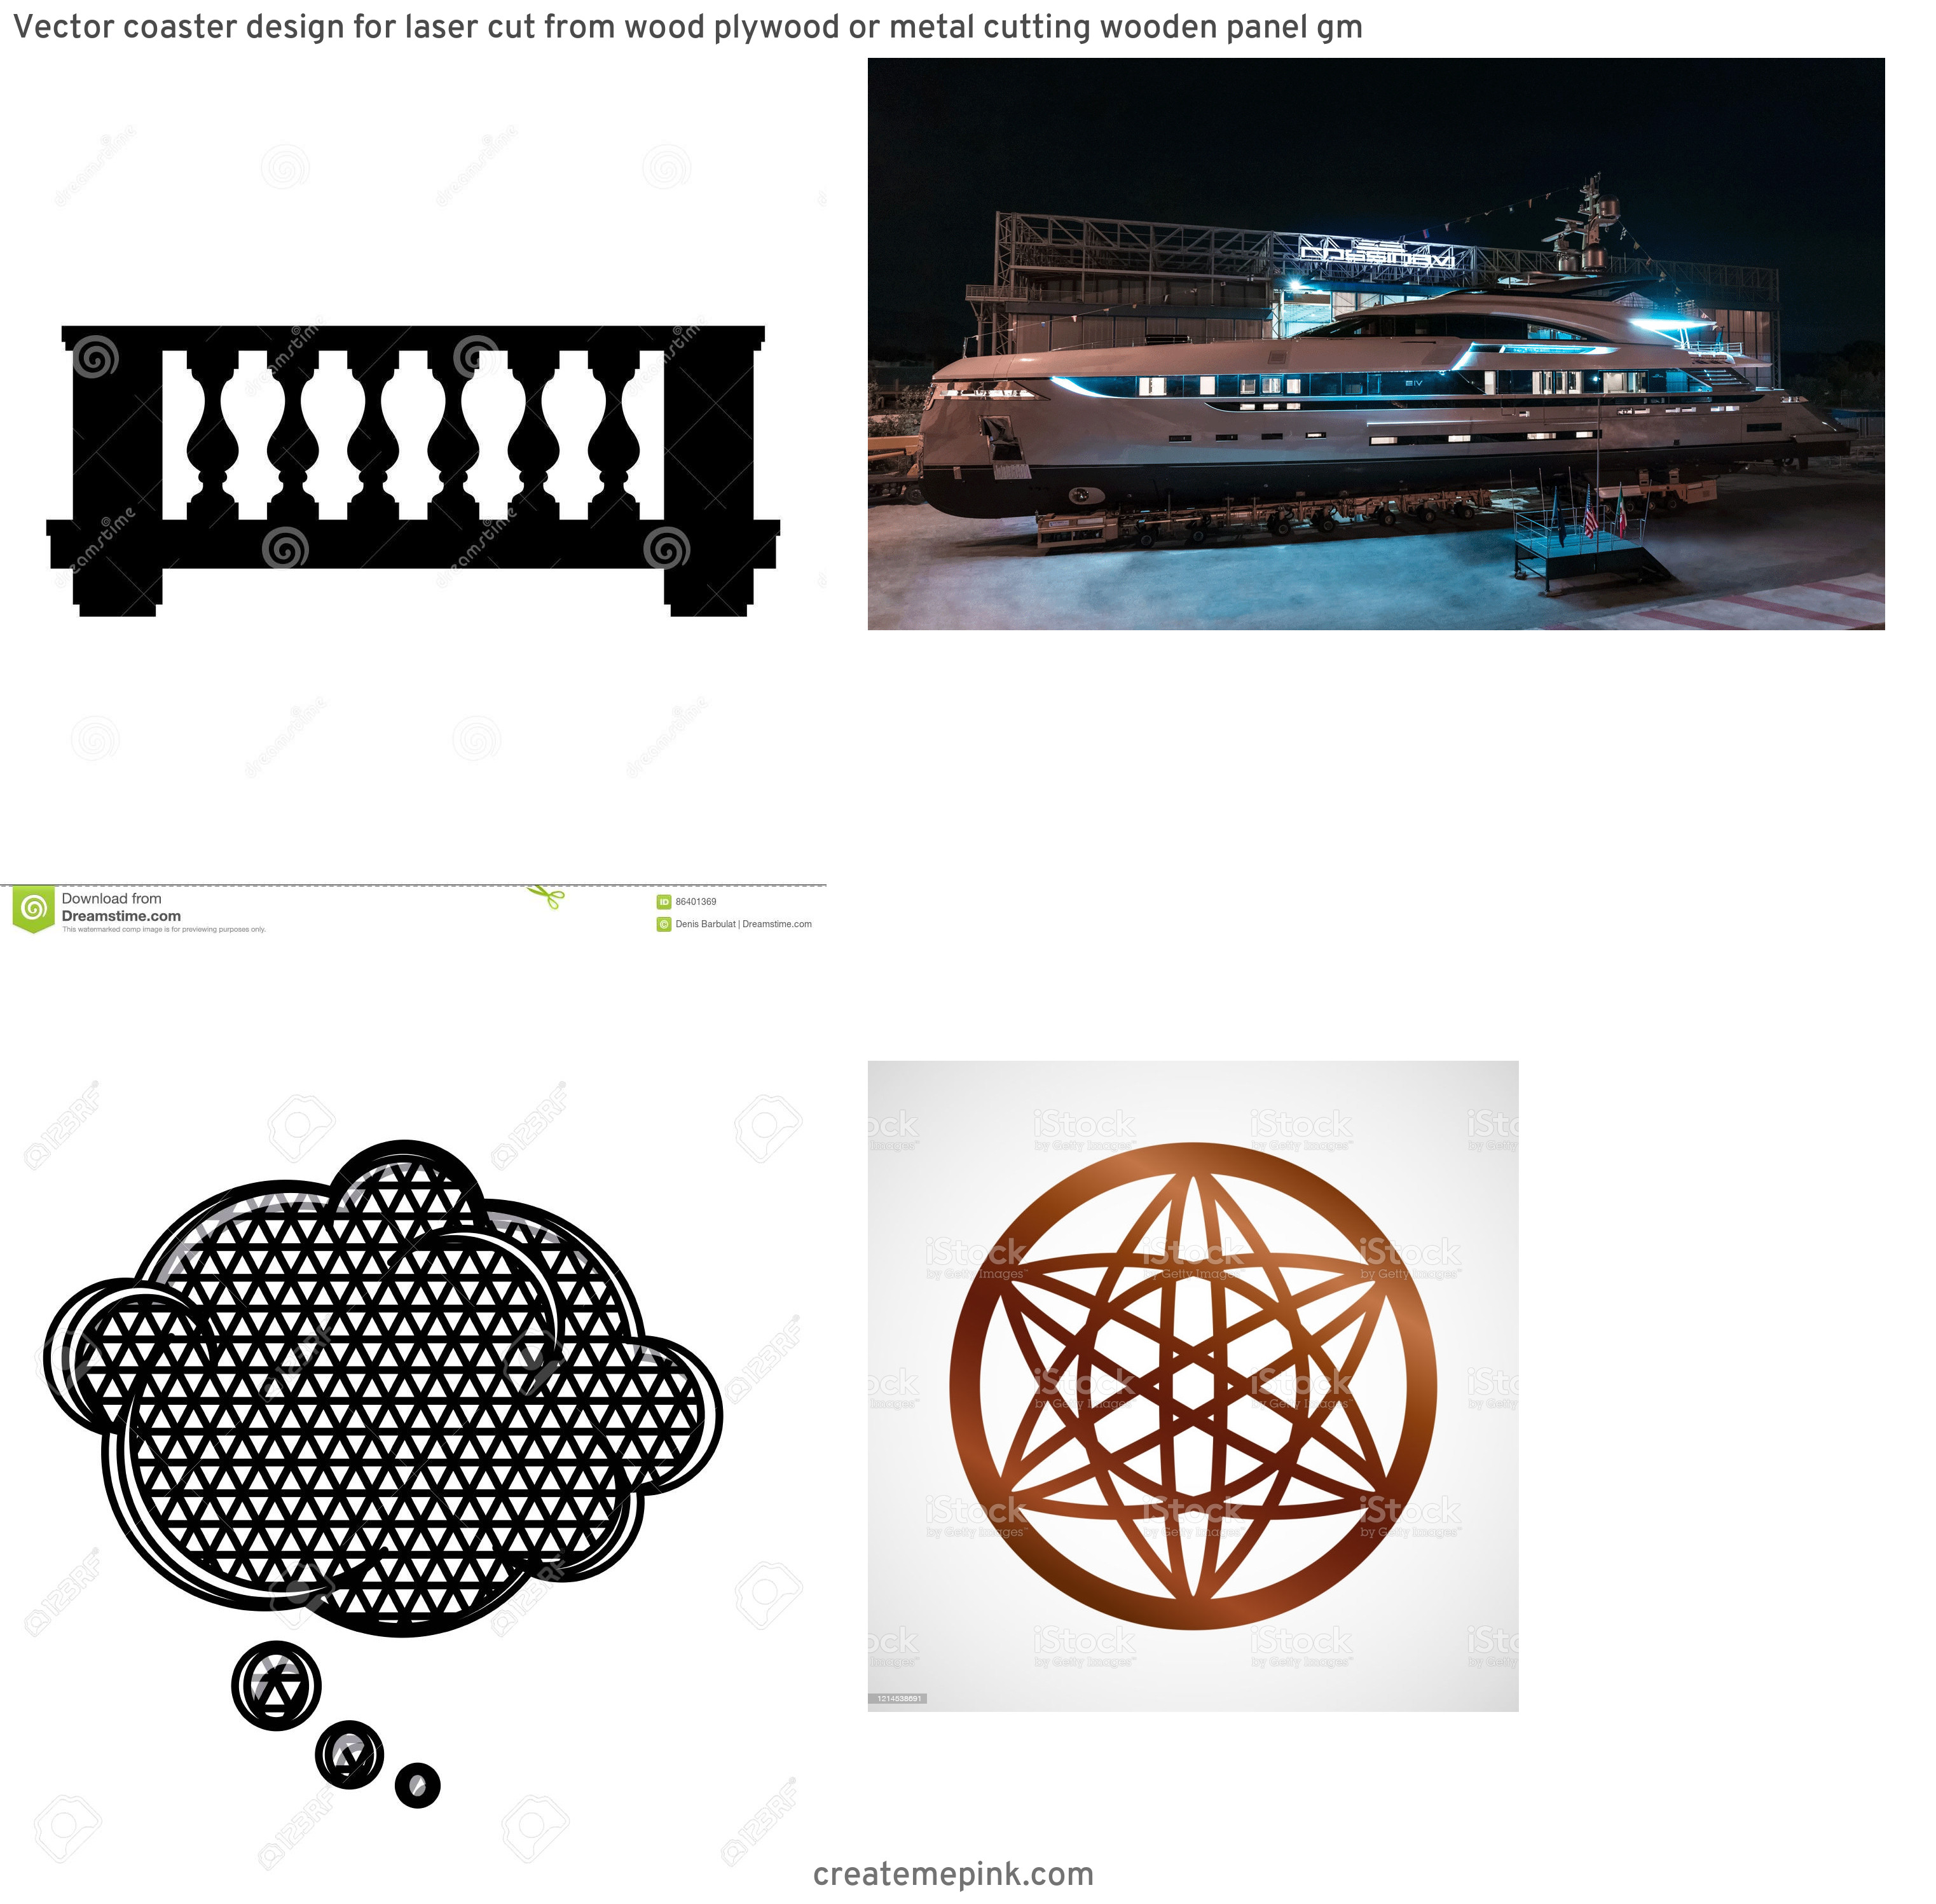 Vector Silhouette Metal Project: Vector Coaster Design For Laser Cut From Wood Plywood Or Metal Cutting Wooden Panel Gm